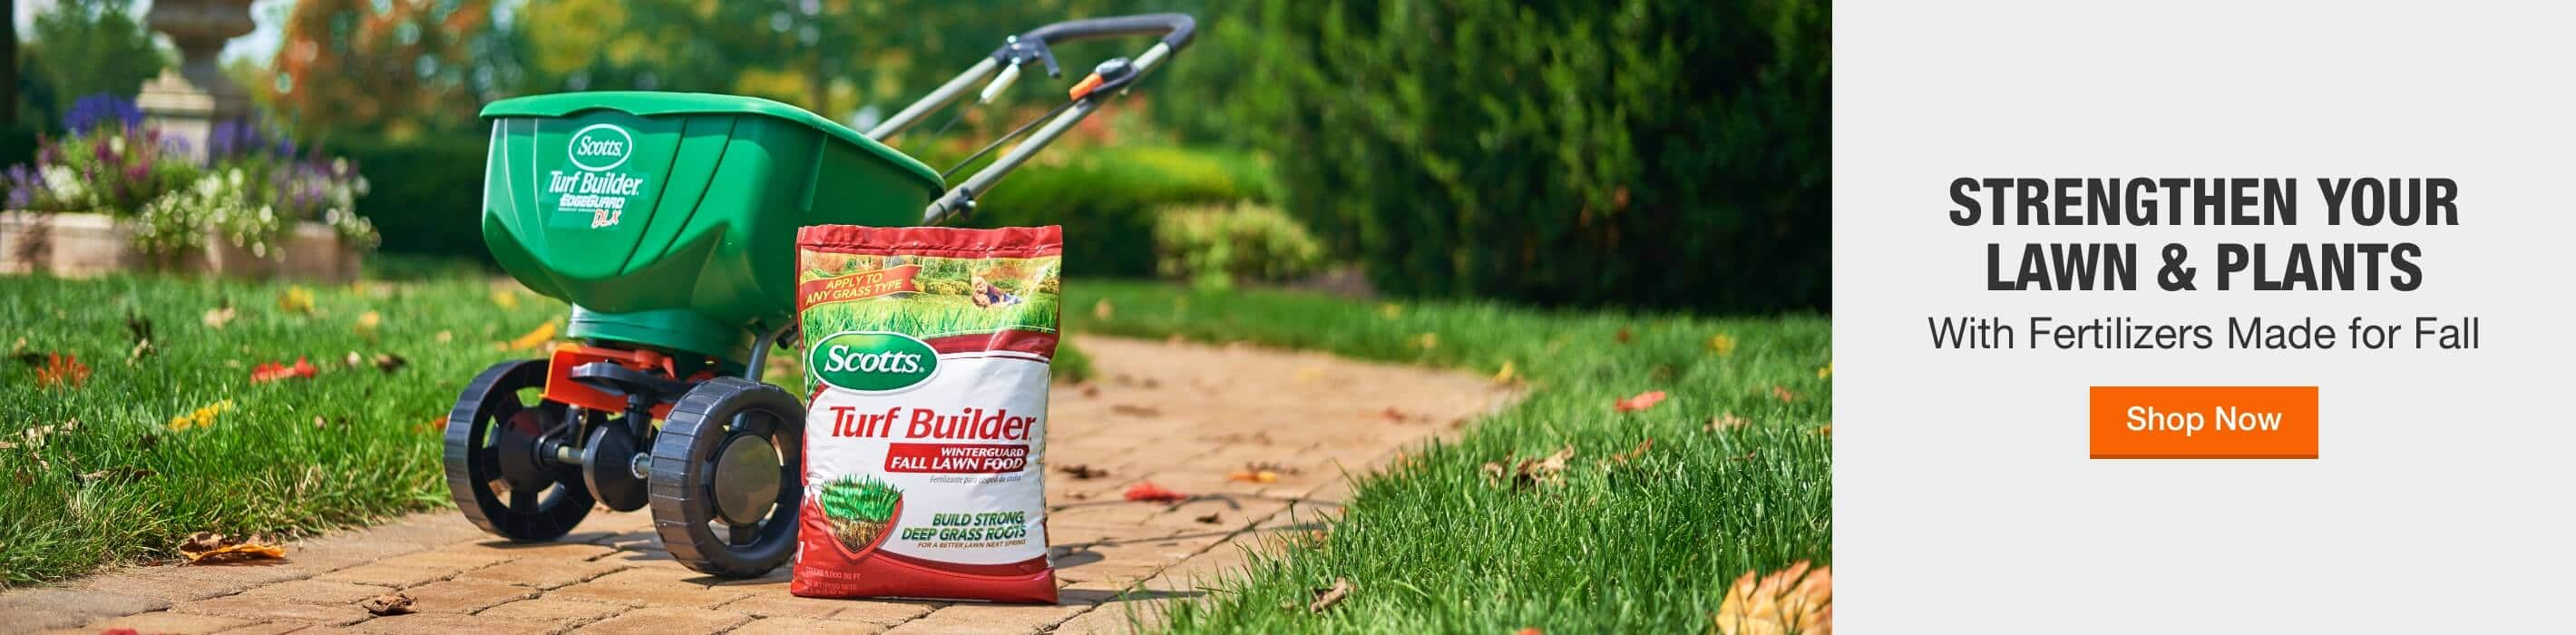 STRENGTHEN YOUR LAWN & PLANTS With Fertilizers Made for Fall Shop Now